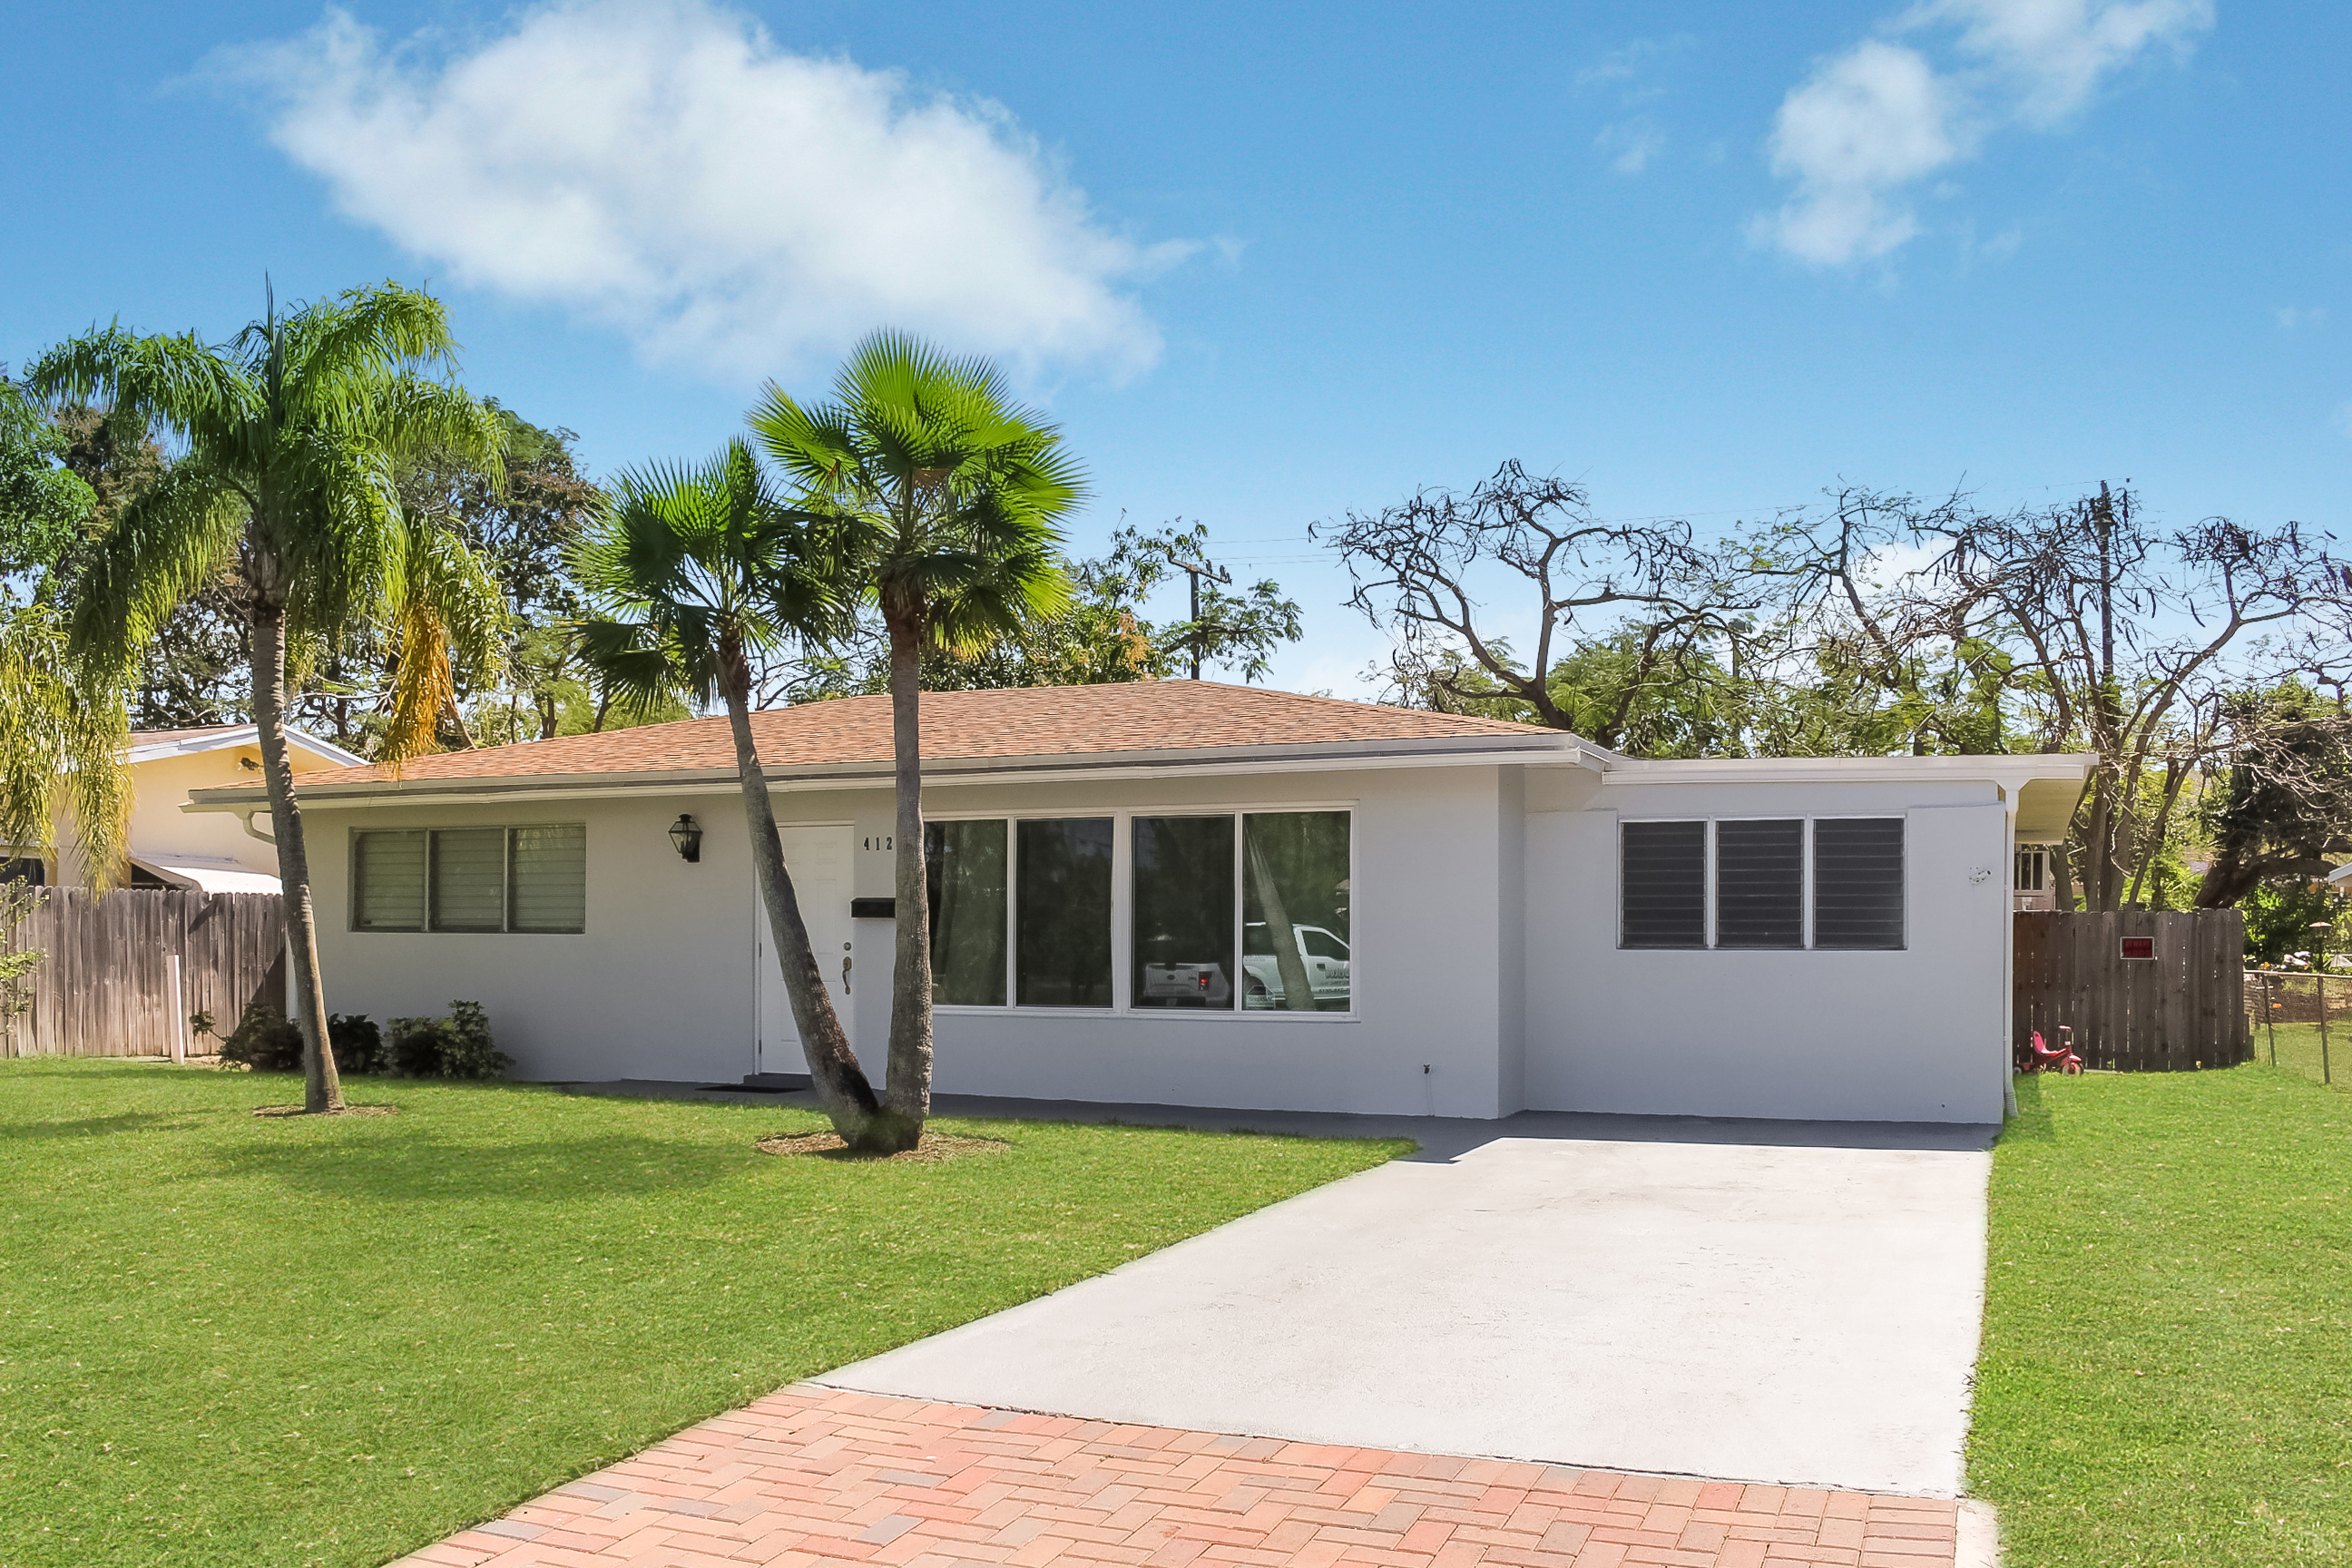 412 SW 10th Av., Boynton Beach, FL 33435